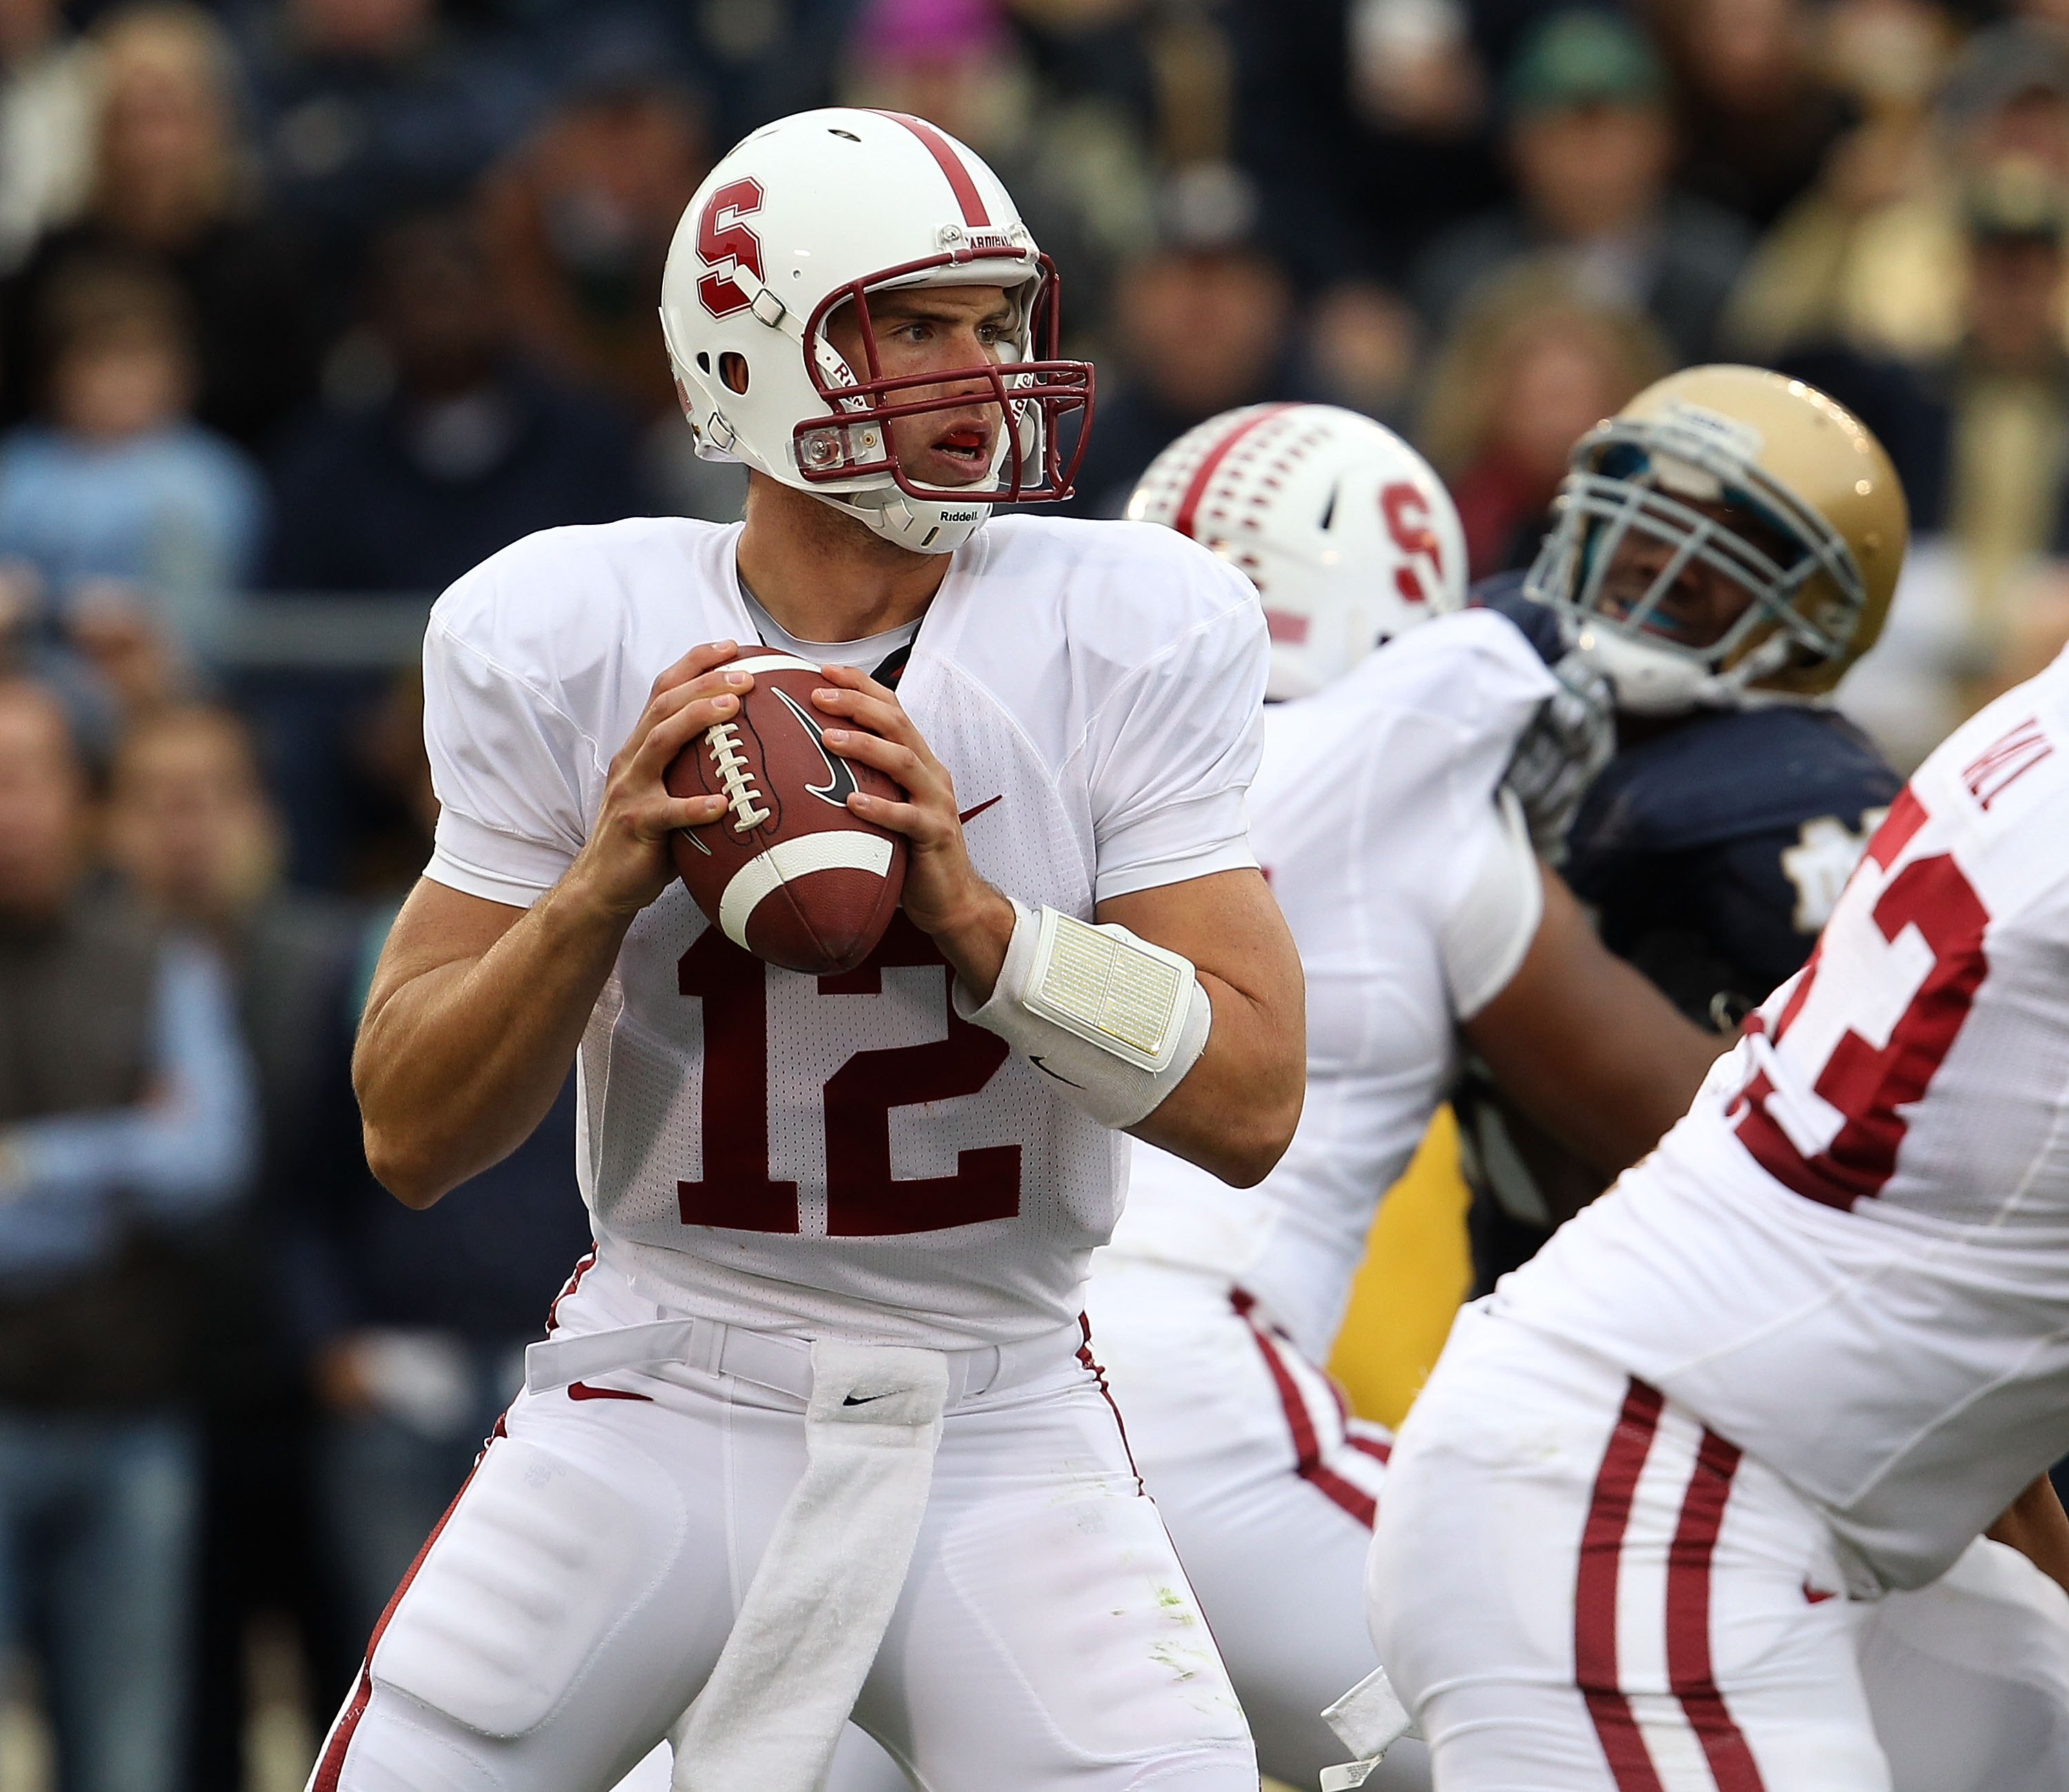 Stanford's Andrew Luck ranks among the best quarterbacks in the country and is a possible No.1 pick in the 2011 NFL Draft.